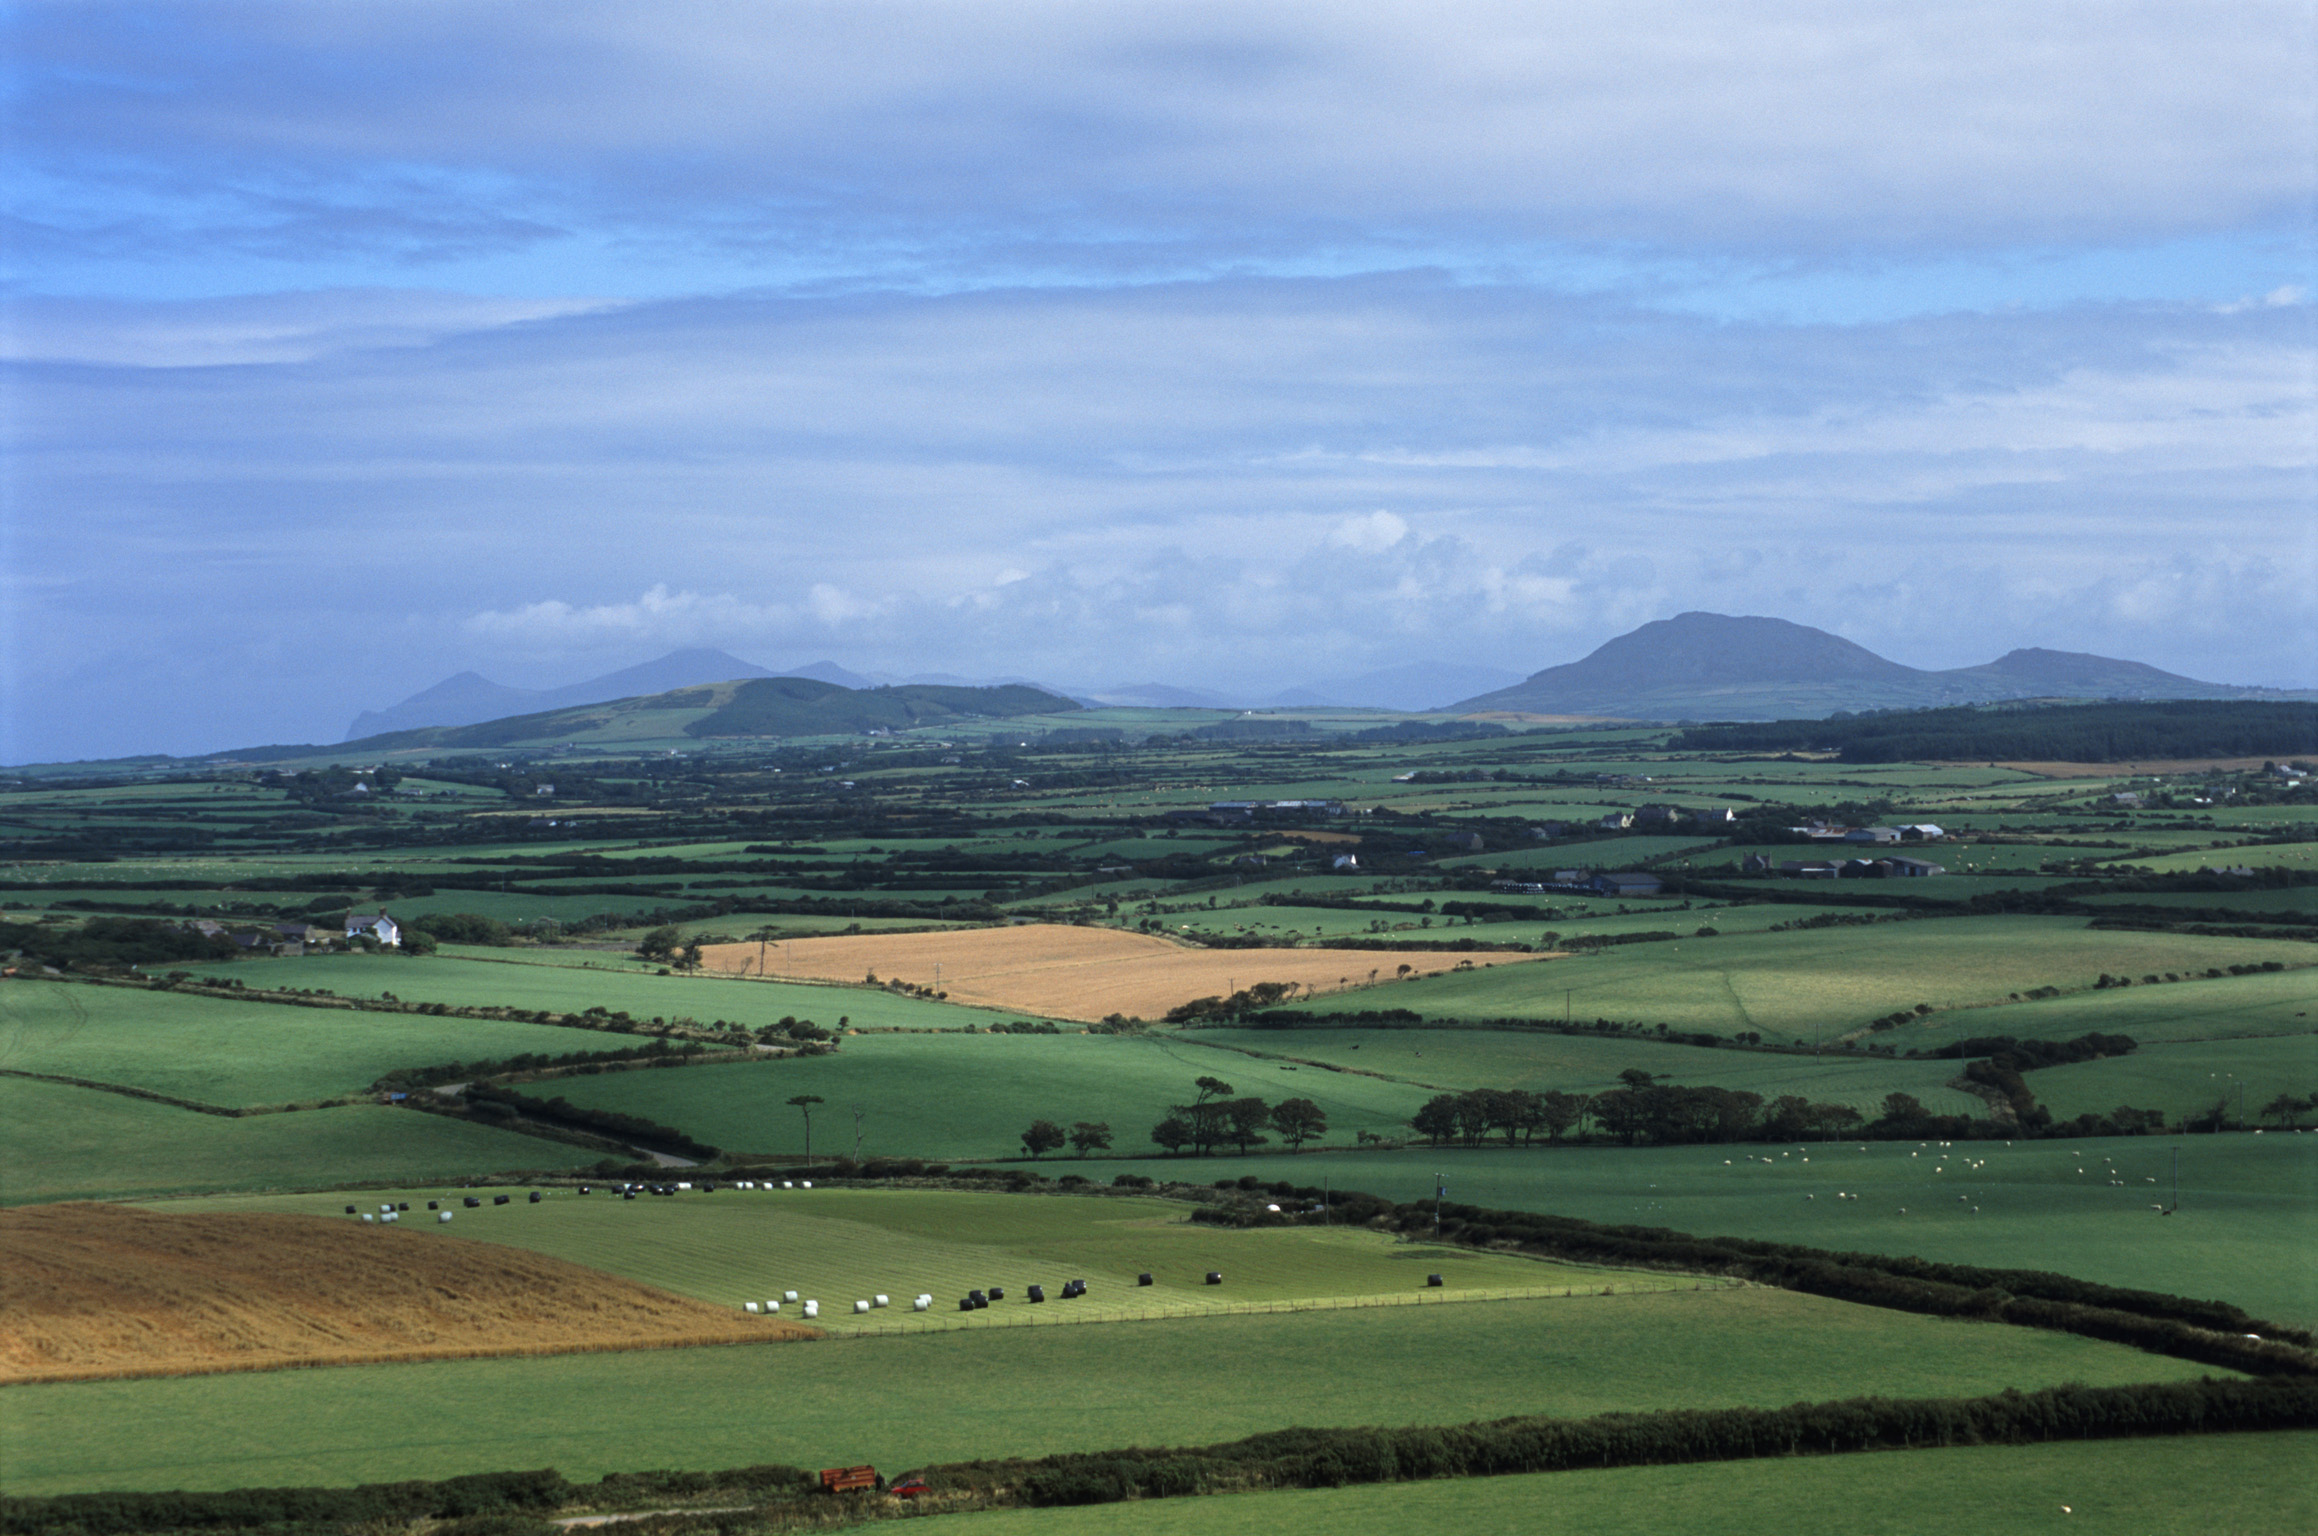 Patchwork of green agricultural fields on the Llyn peninsula with a scenic landscape view across to distant mountains